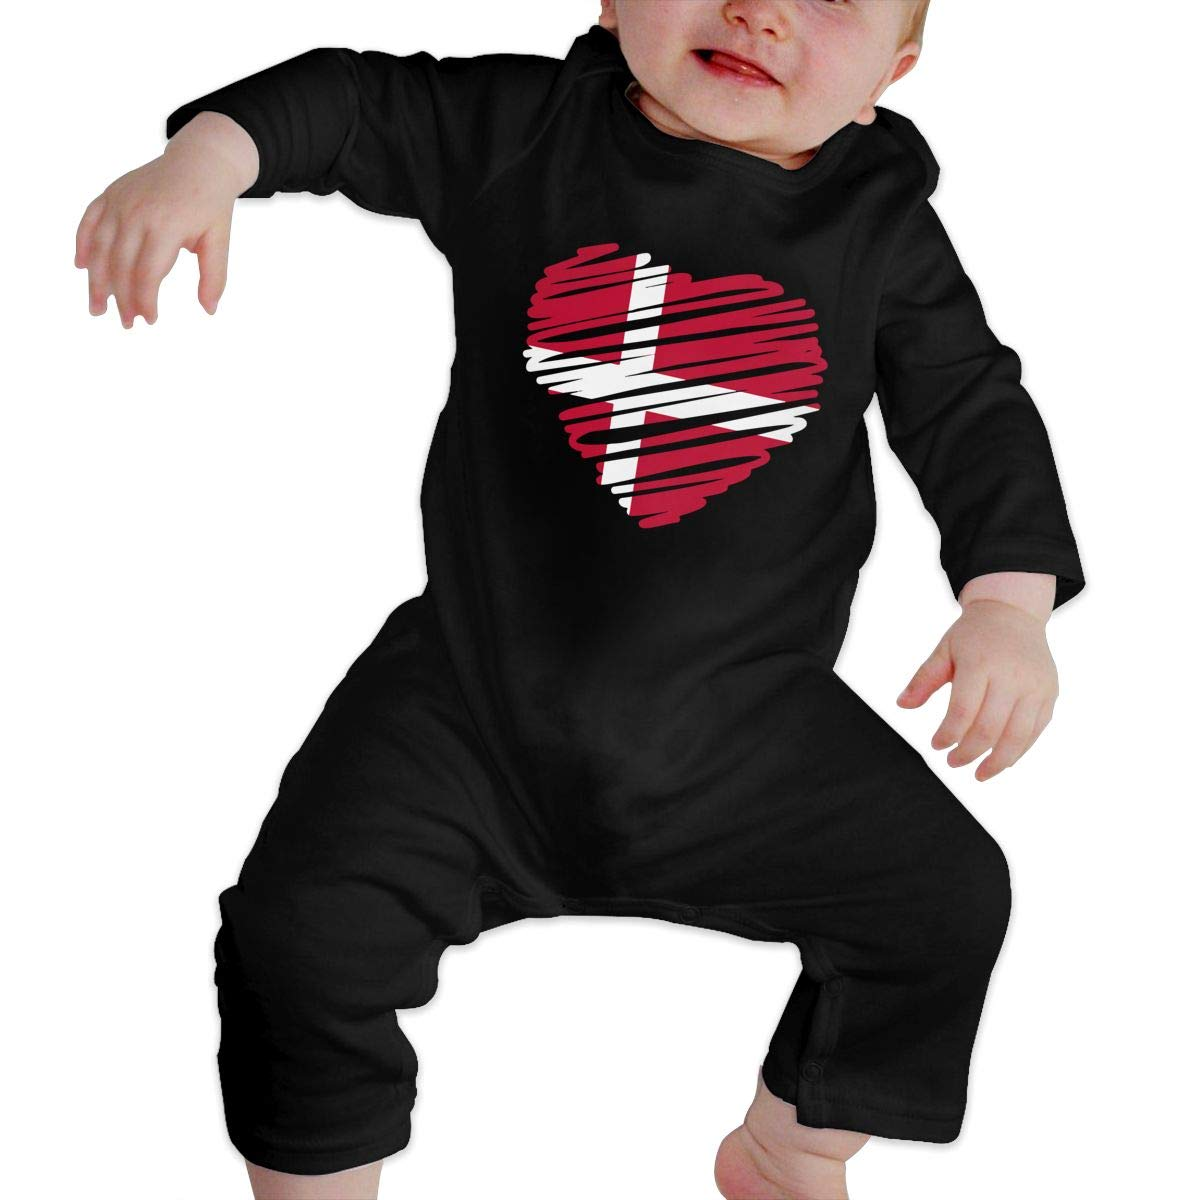 Q64 Baby Girls Round Collar Denmark Heart Flag Long Sleeve Playsuit 100/% Cotton Suit 6-24 Months